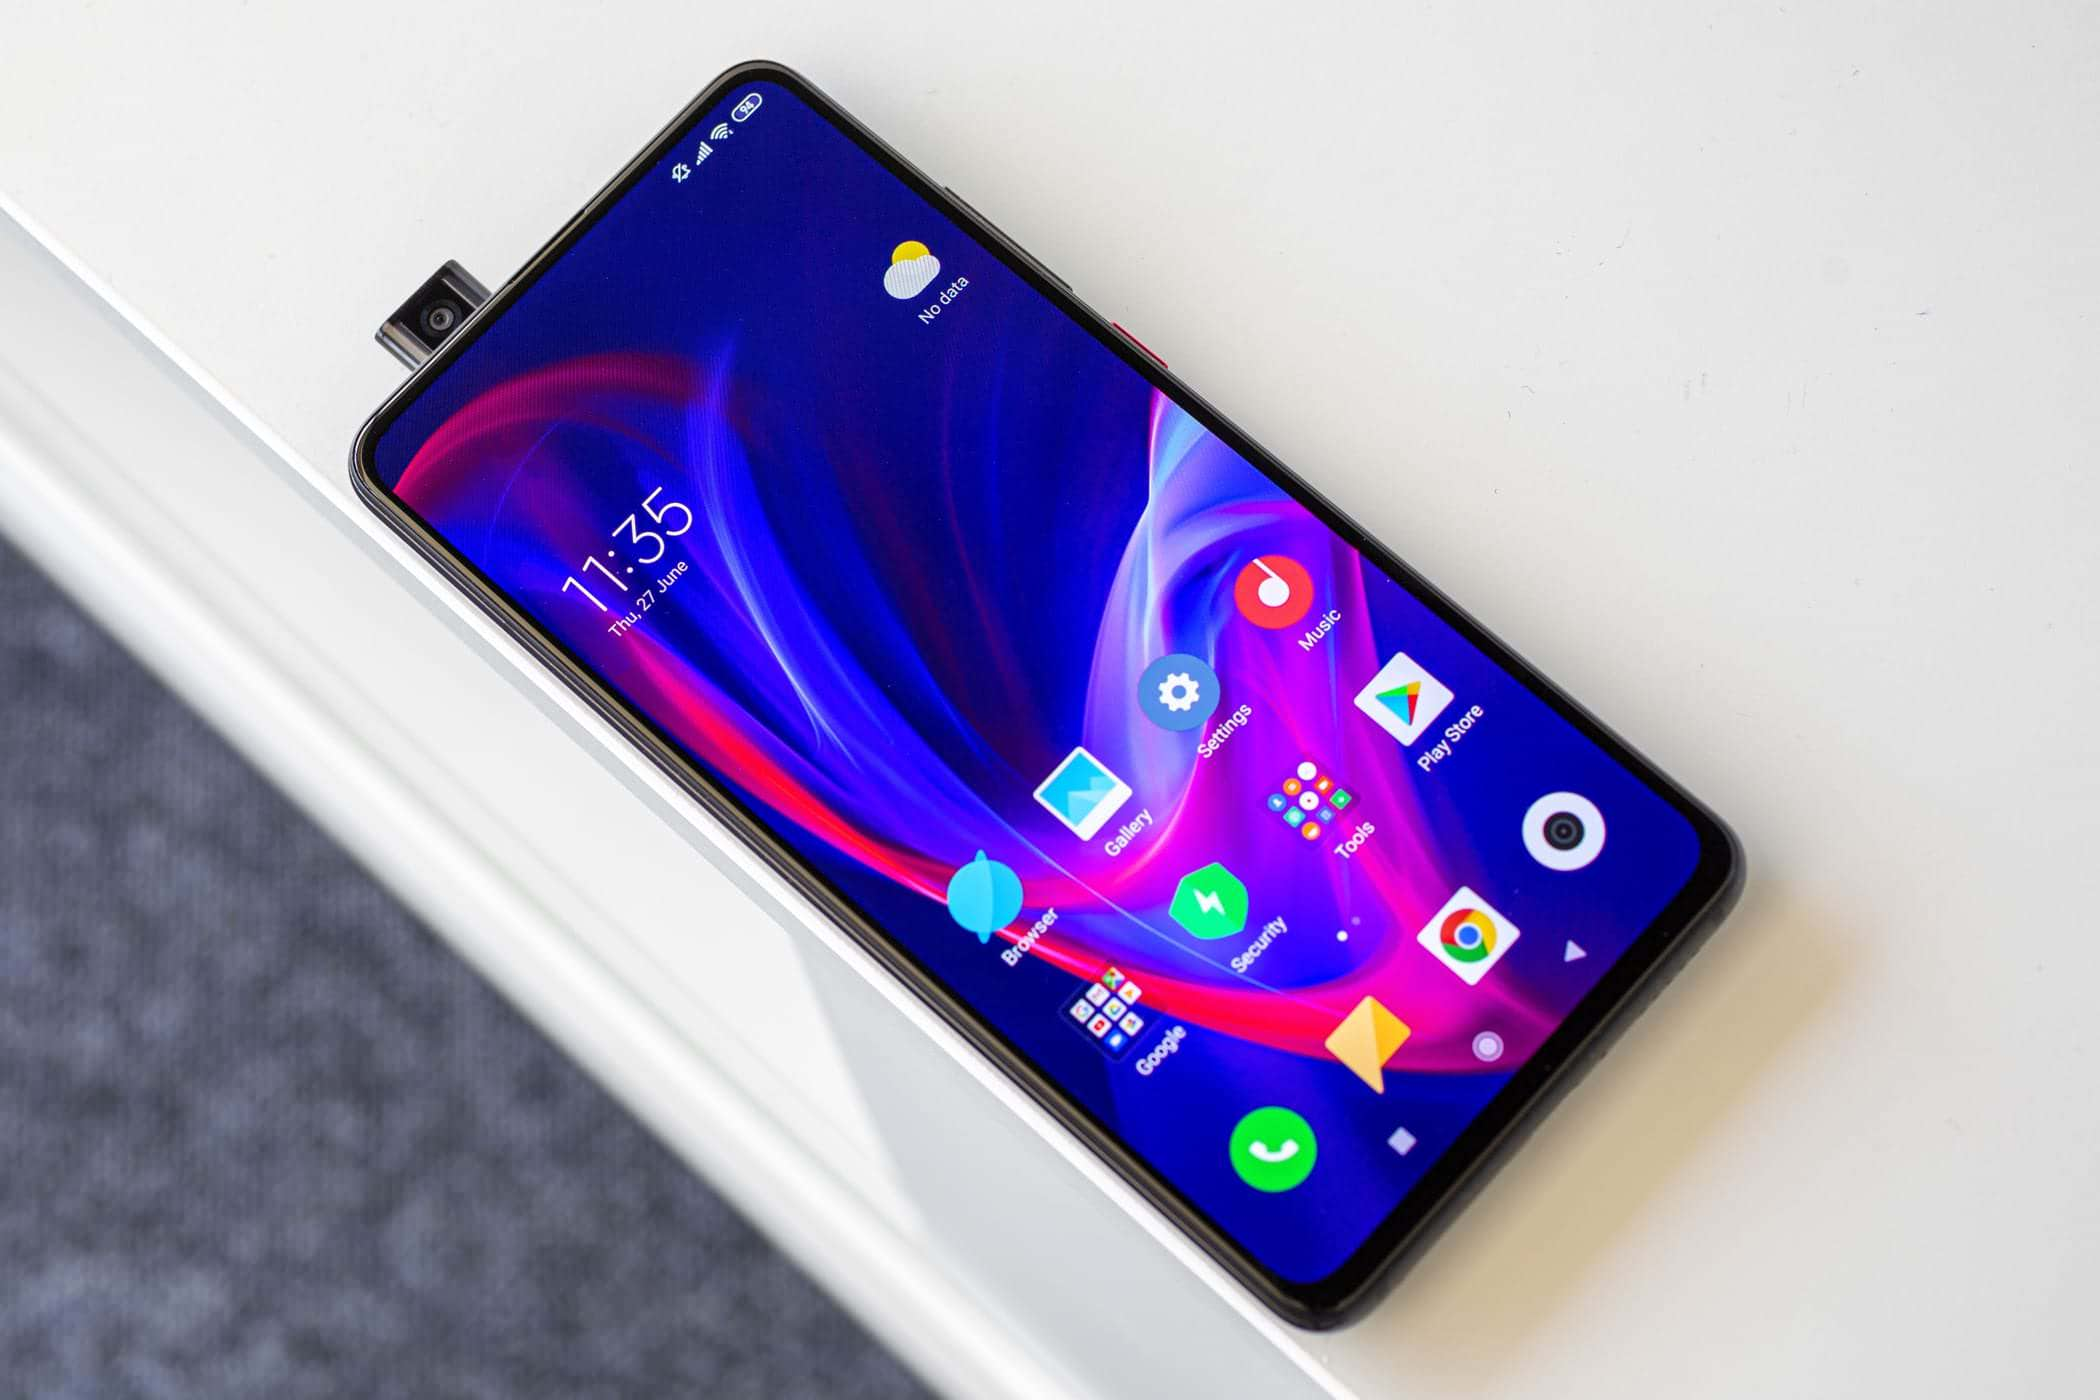 Leak confirms Xiaomi Redmi K30 Ultra with a MediaTek SoC, a 64 MP primary  camera and a pop-up camera as 120 W Xiaomi charger appears at the 3C -  NotebookCheck.net News